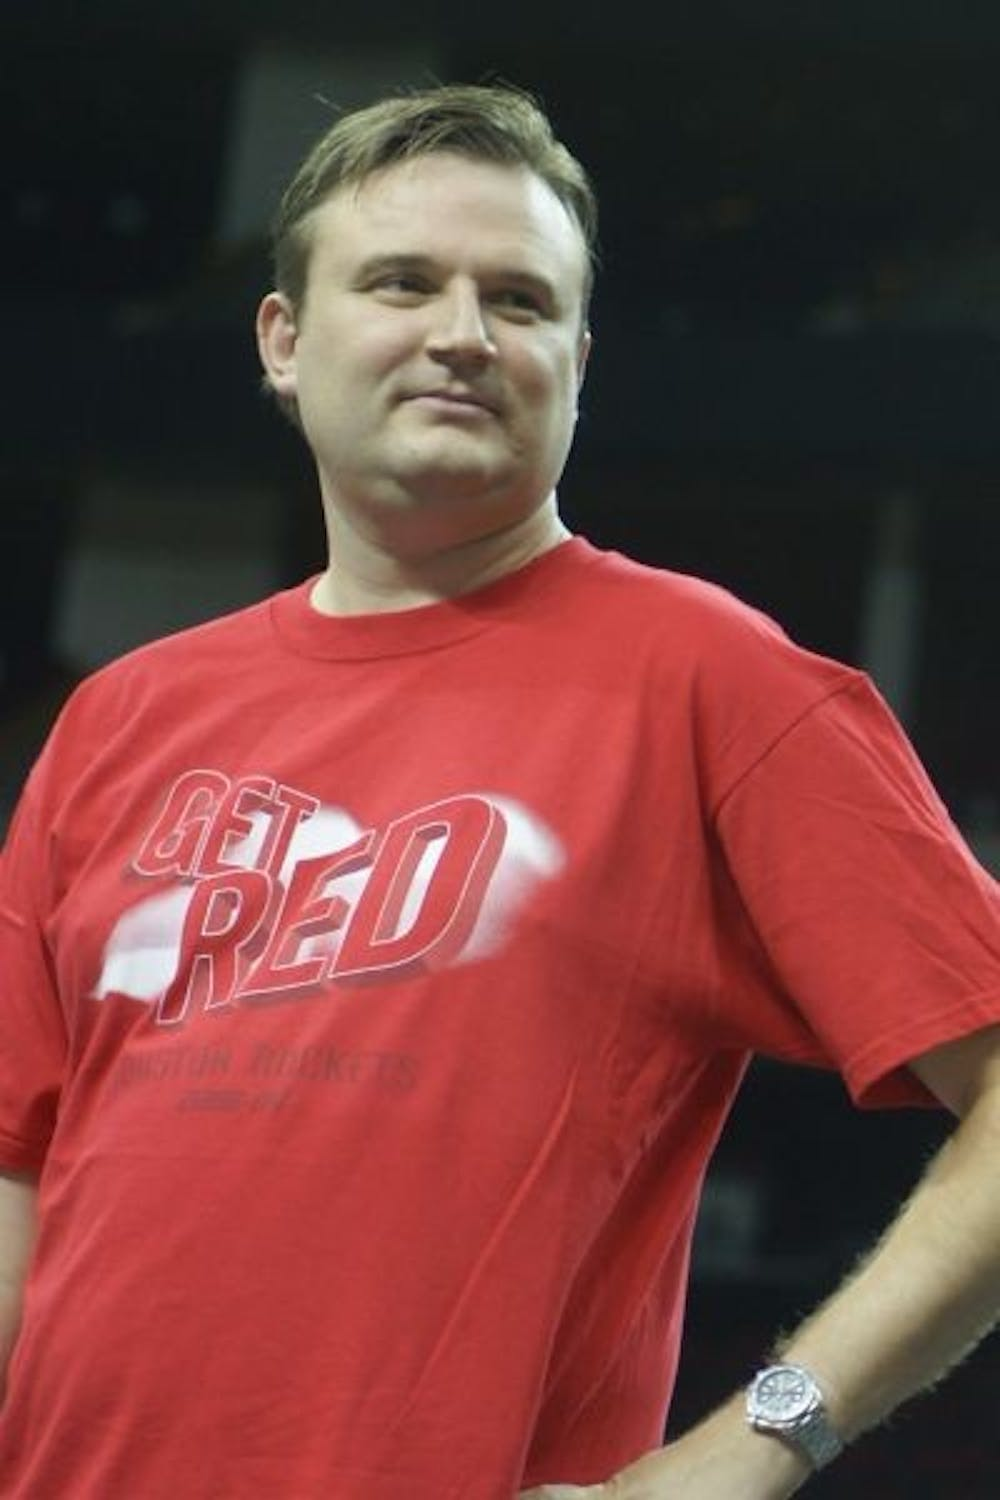 <p>Daryl Morey, General Manager of the Houston Rockets</p> <h6>Photo Credit: Morbidthoughts via Wikimedia Commons</h6>